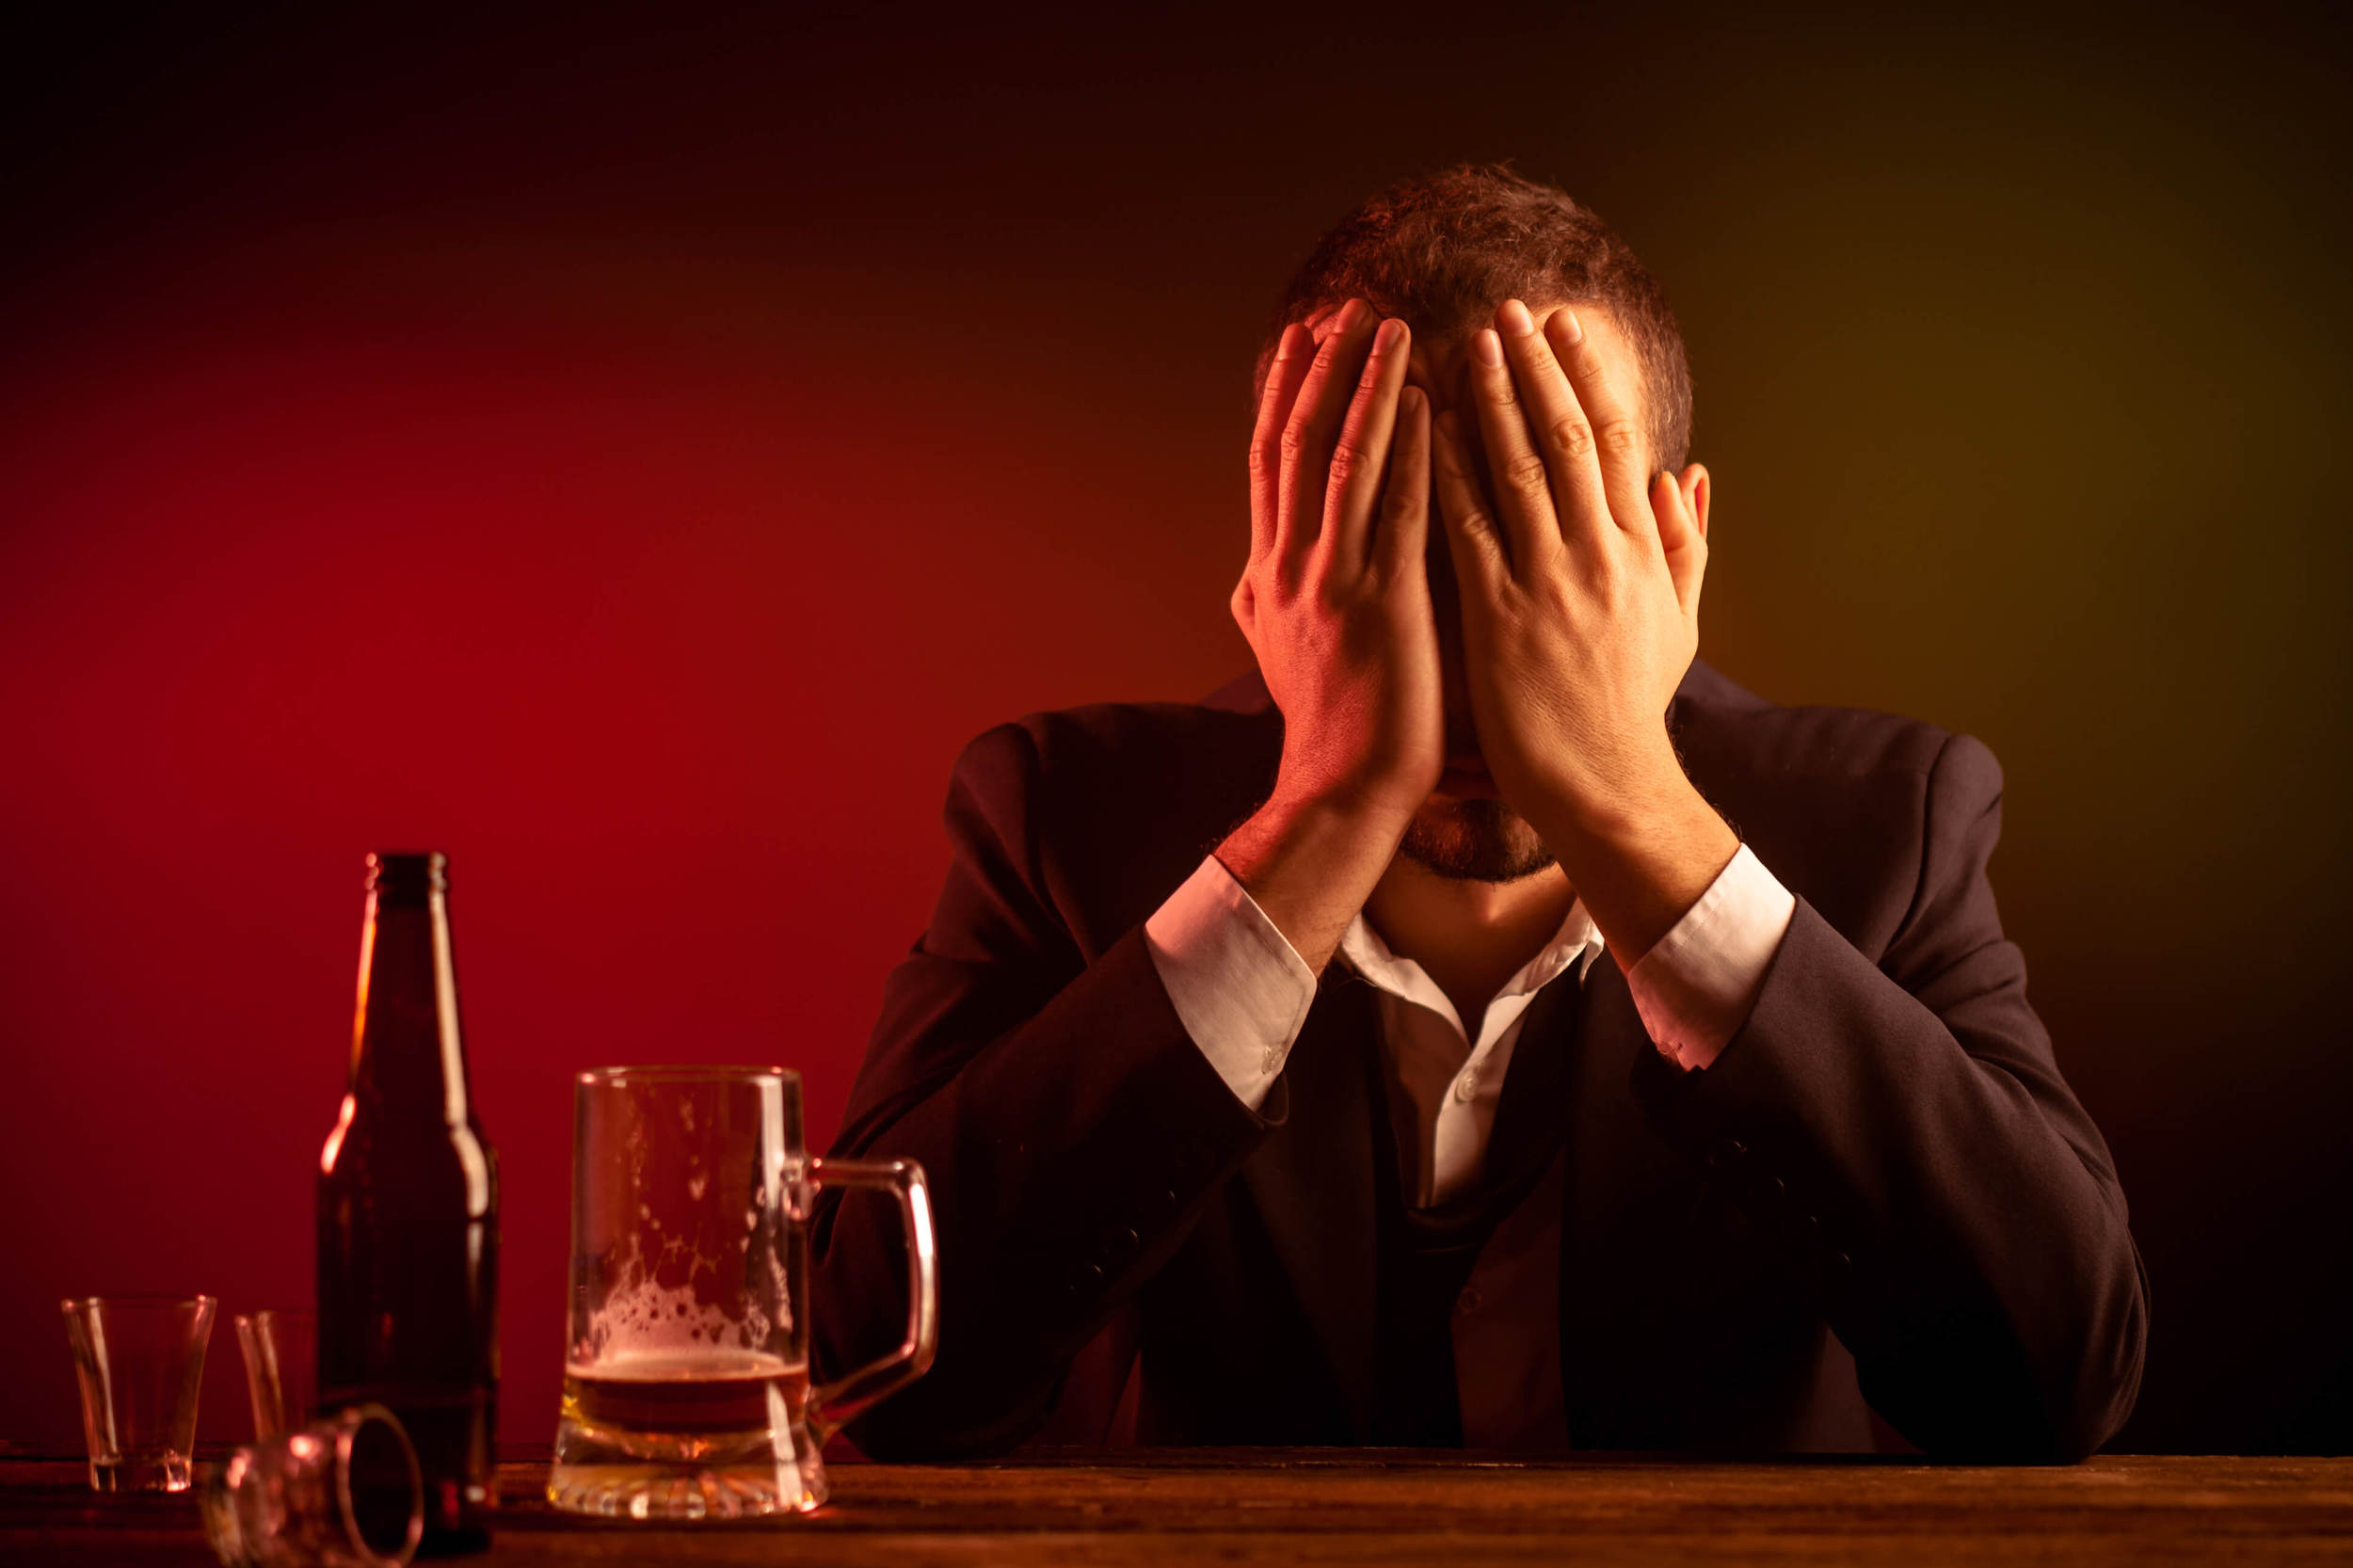 Treat alcoholism in San Diego for free with detox.